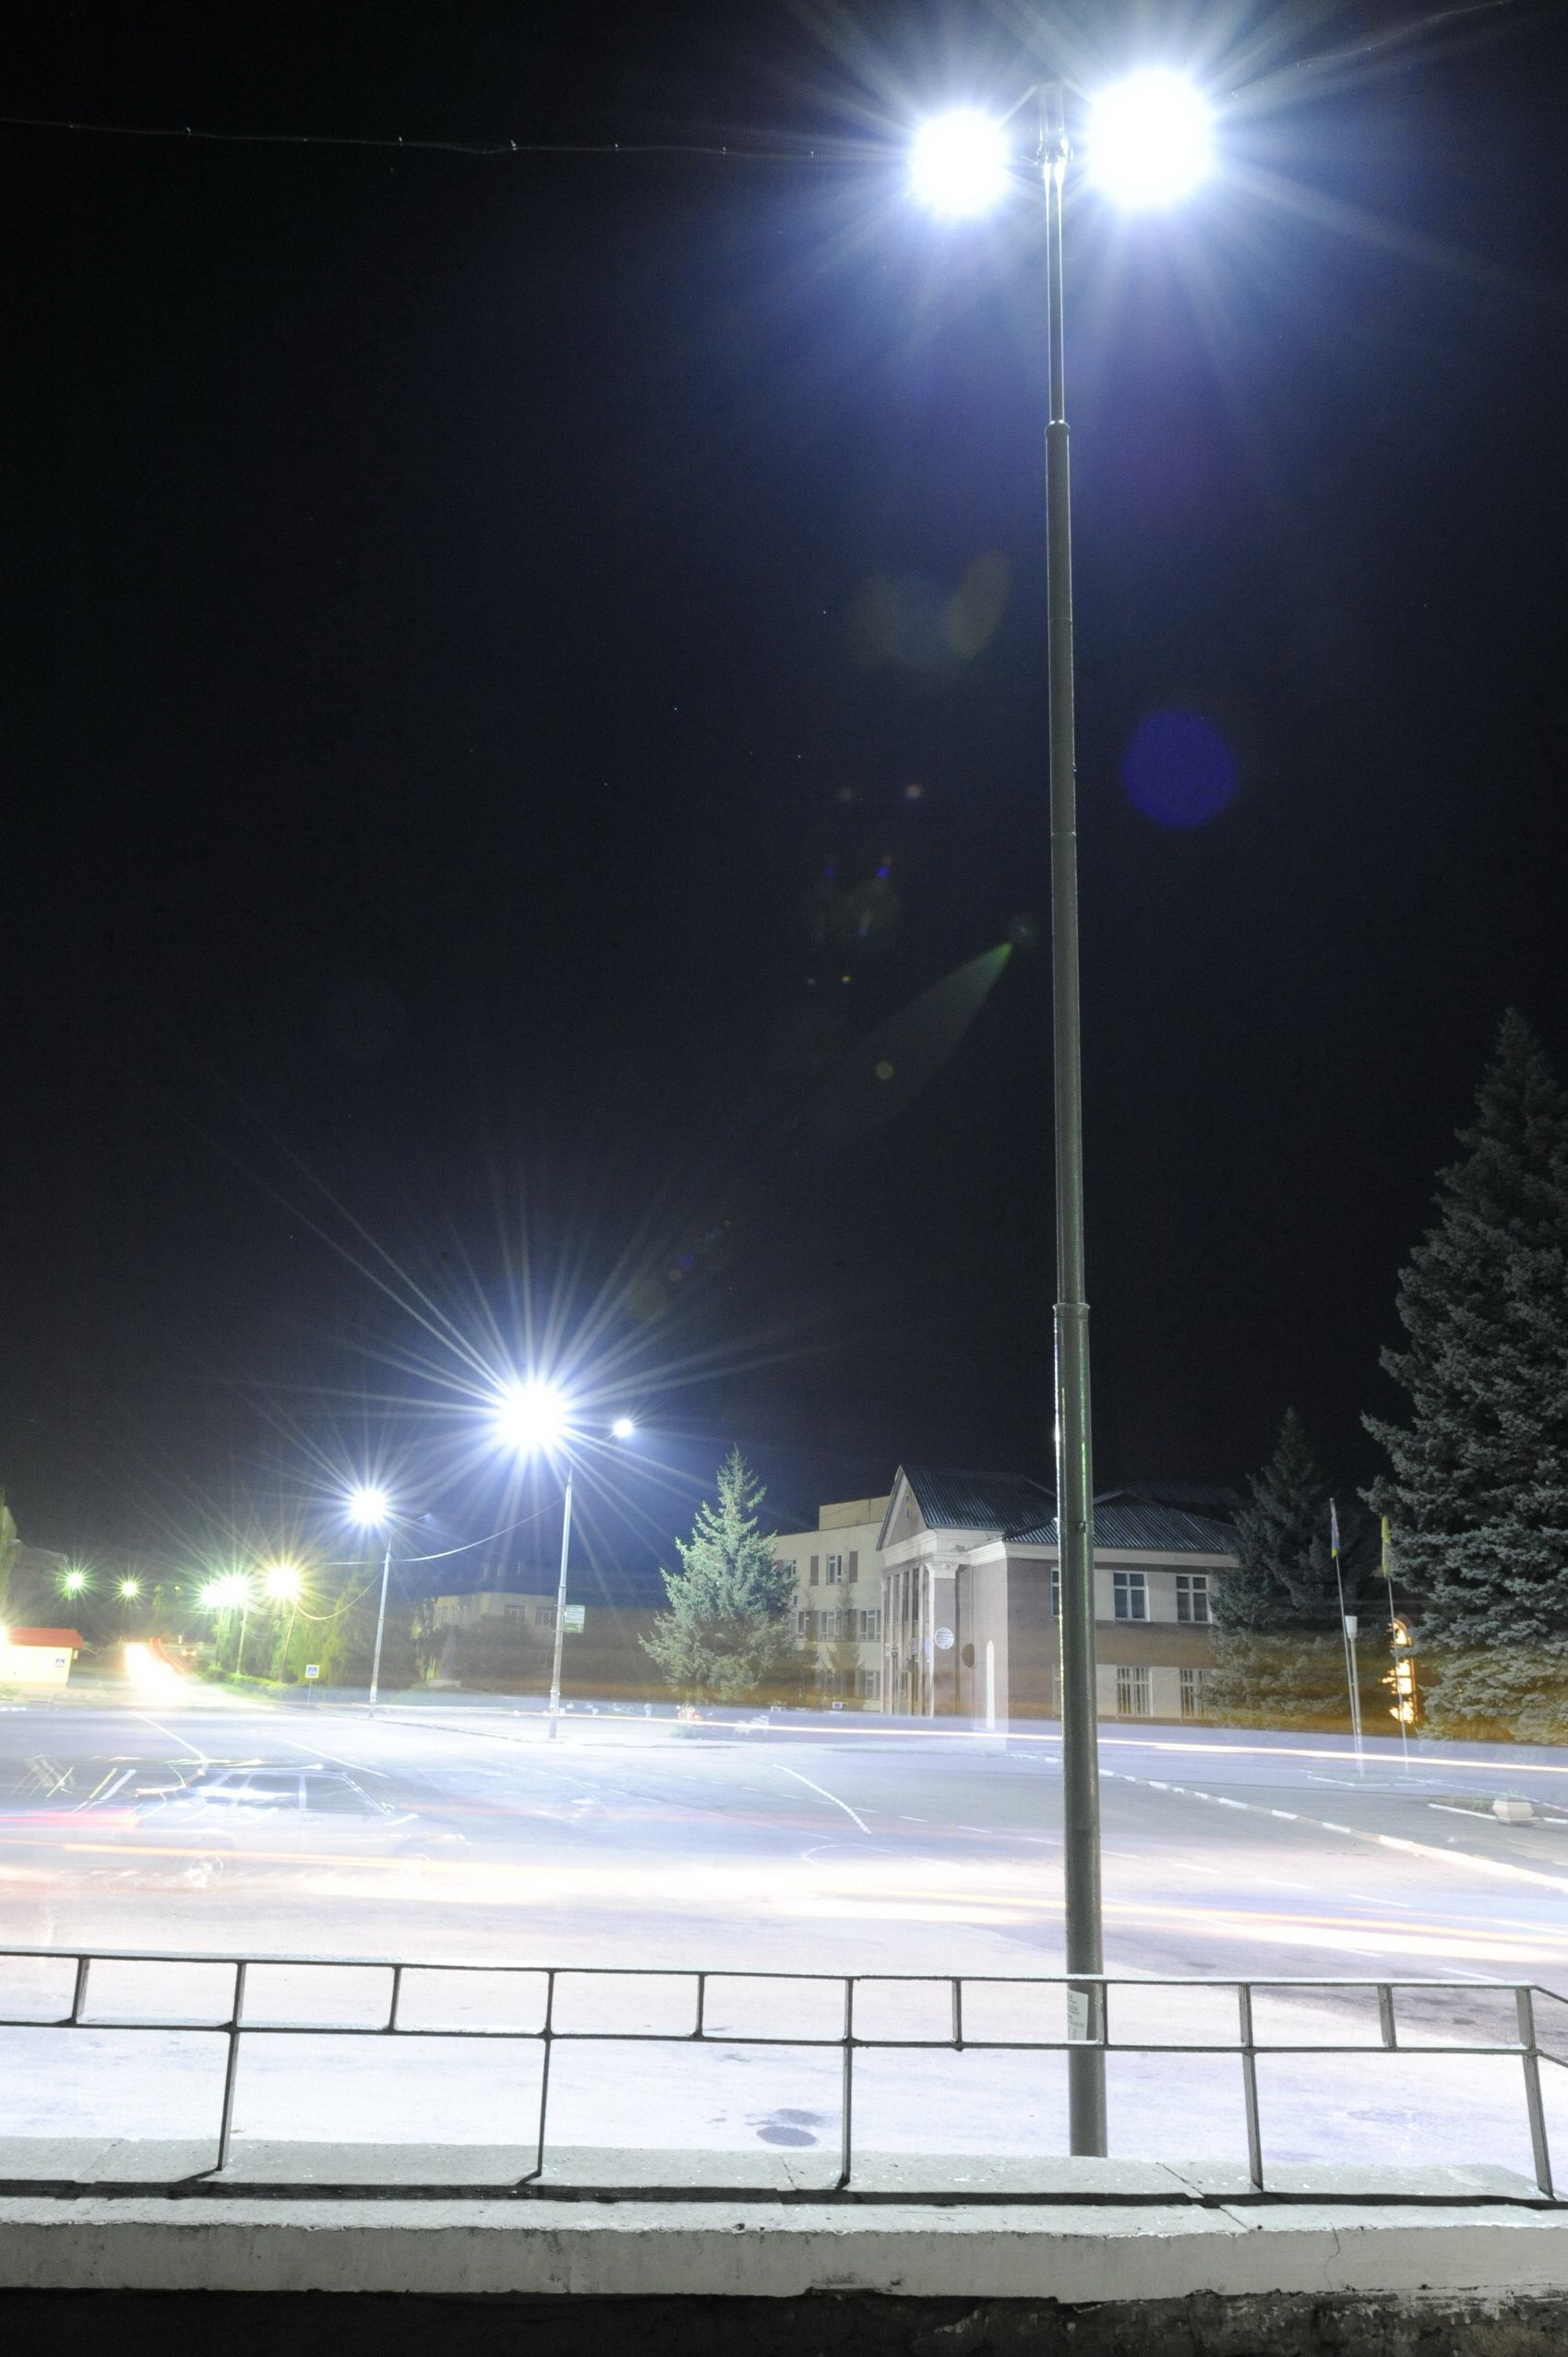 portland save led petition of energy retrofitting has order or street on to pollution comparison lights its costs taken all light other in leds lighting like stop many cities